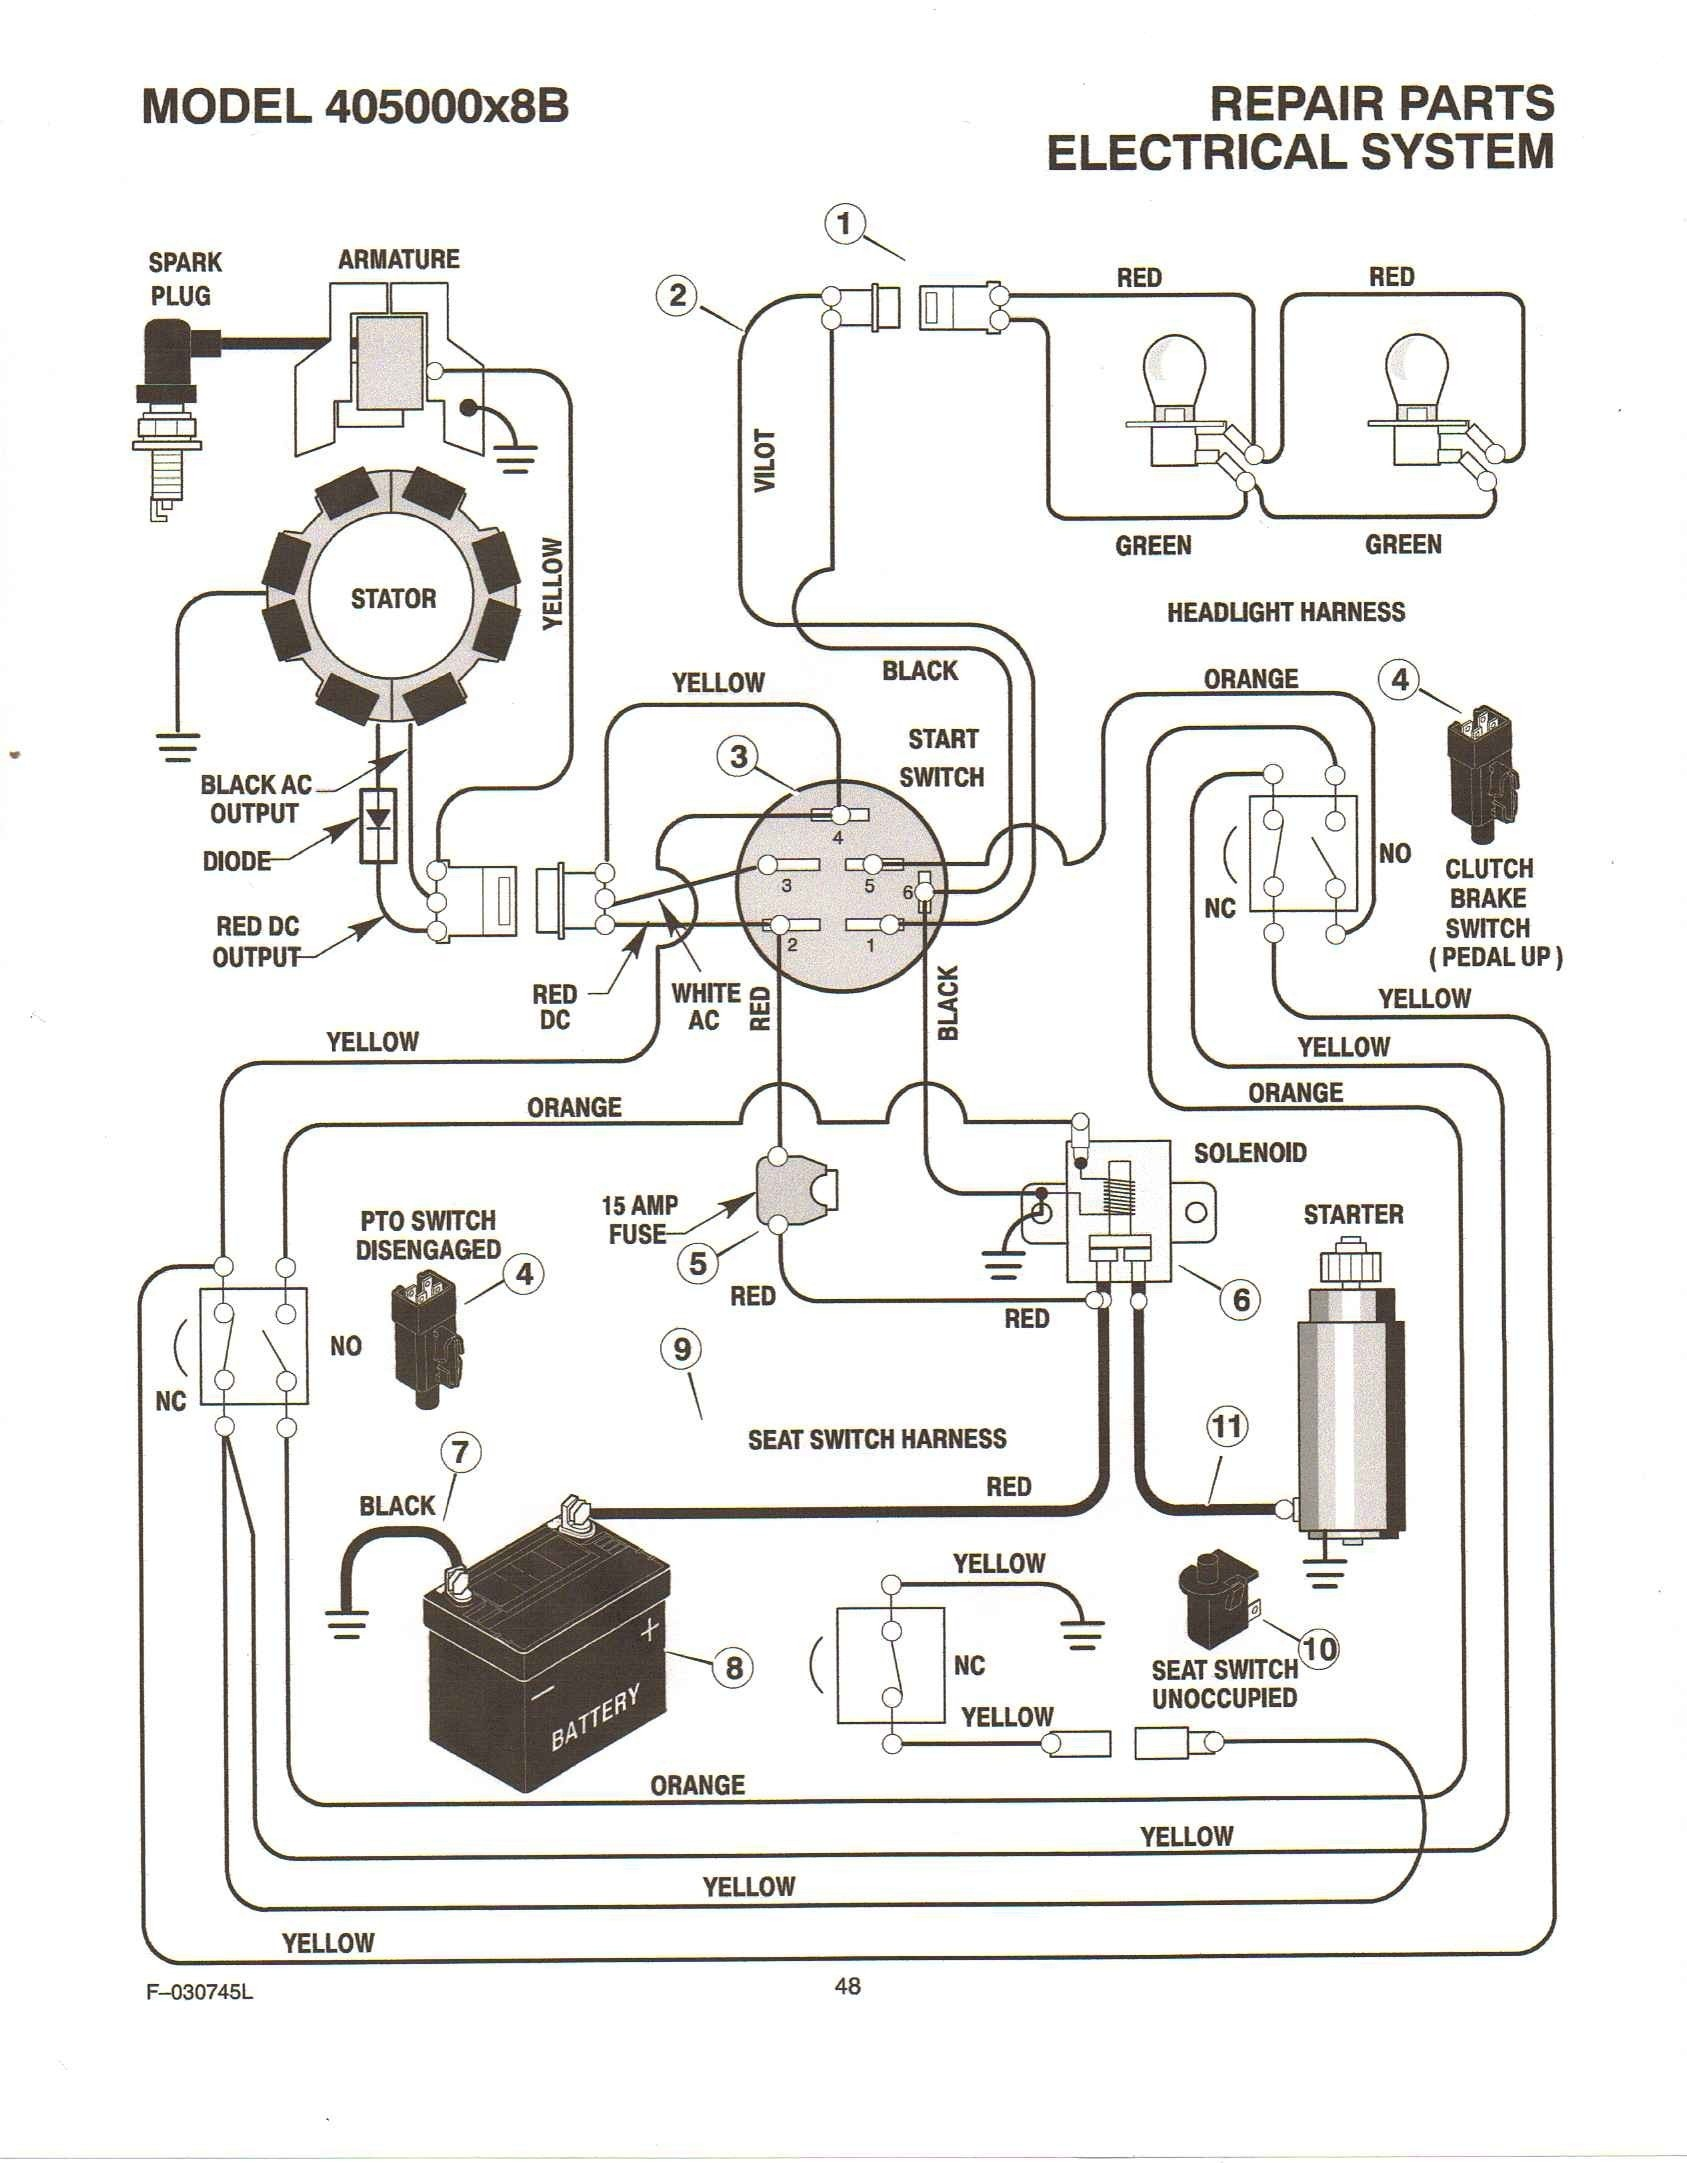 Briggs Stratton Engine Diagram Kohler Ignition Switch Wiring Diagram Best Wiring Diagram for Kohler Of Briggs Stratton Engine Diagram Kohler Ignition Switch Wiring Diagram Best Wiring Diagram for Kohler